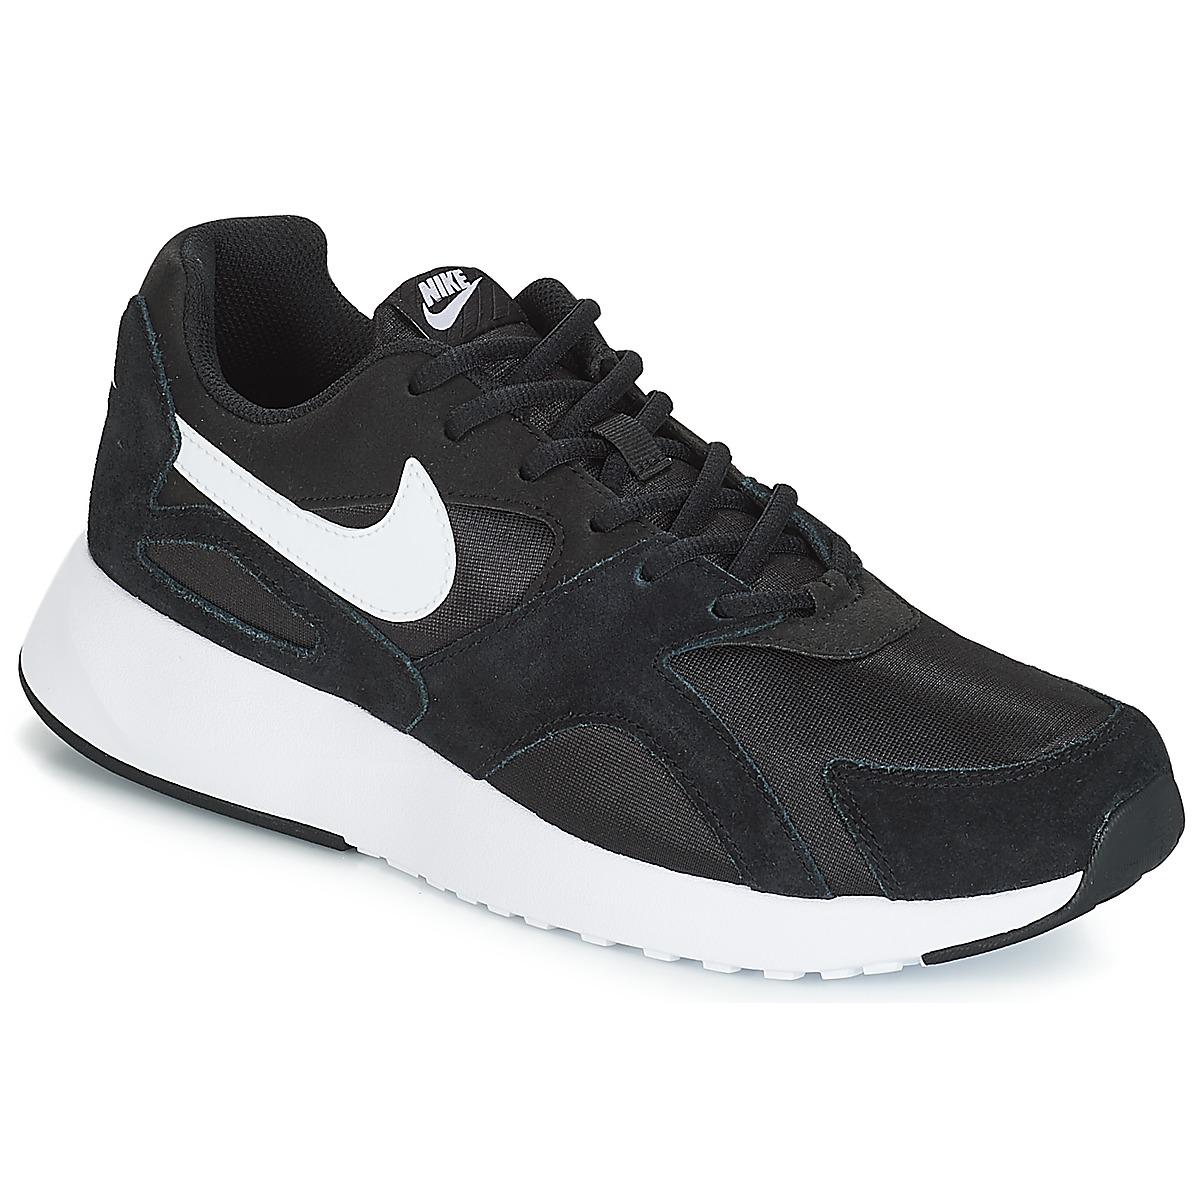 333cc3a7d76c Nike Pantheos Men s Shoes (trainers) In Black in Black for Men ...